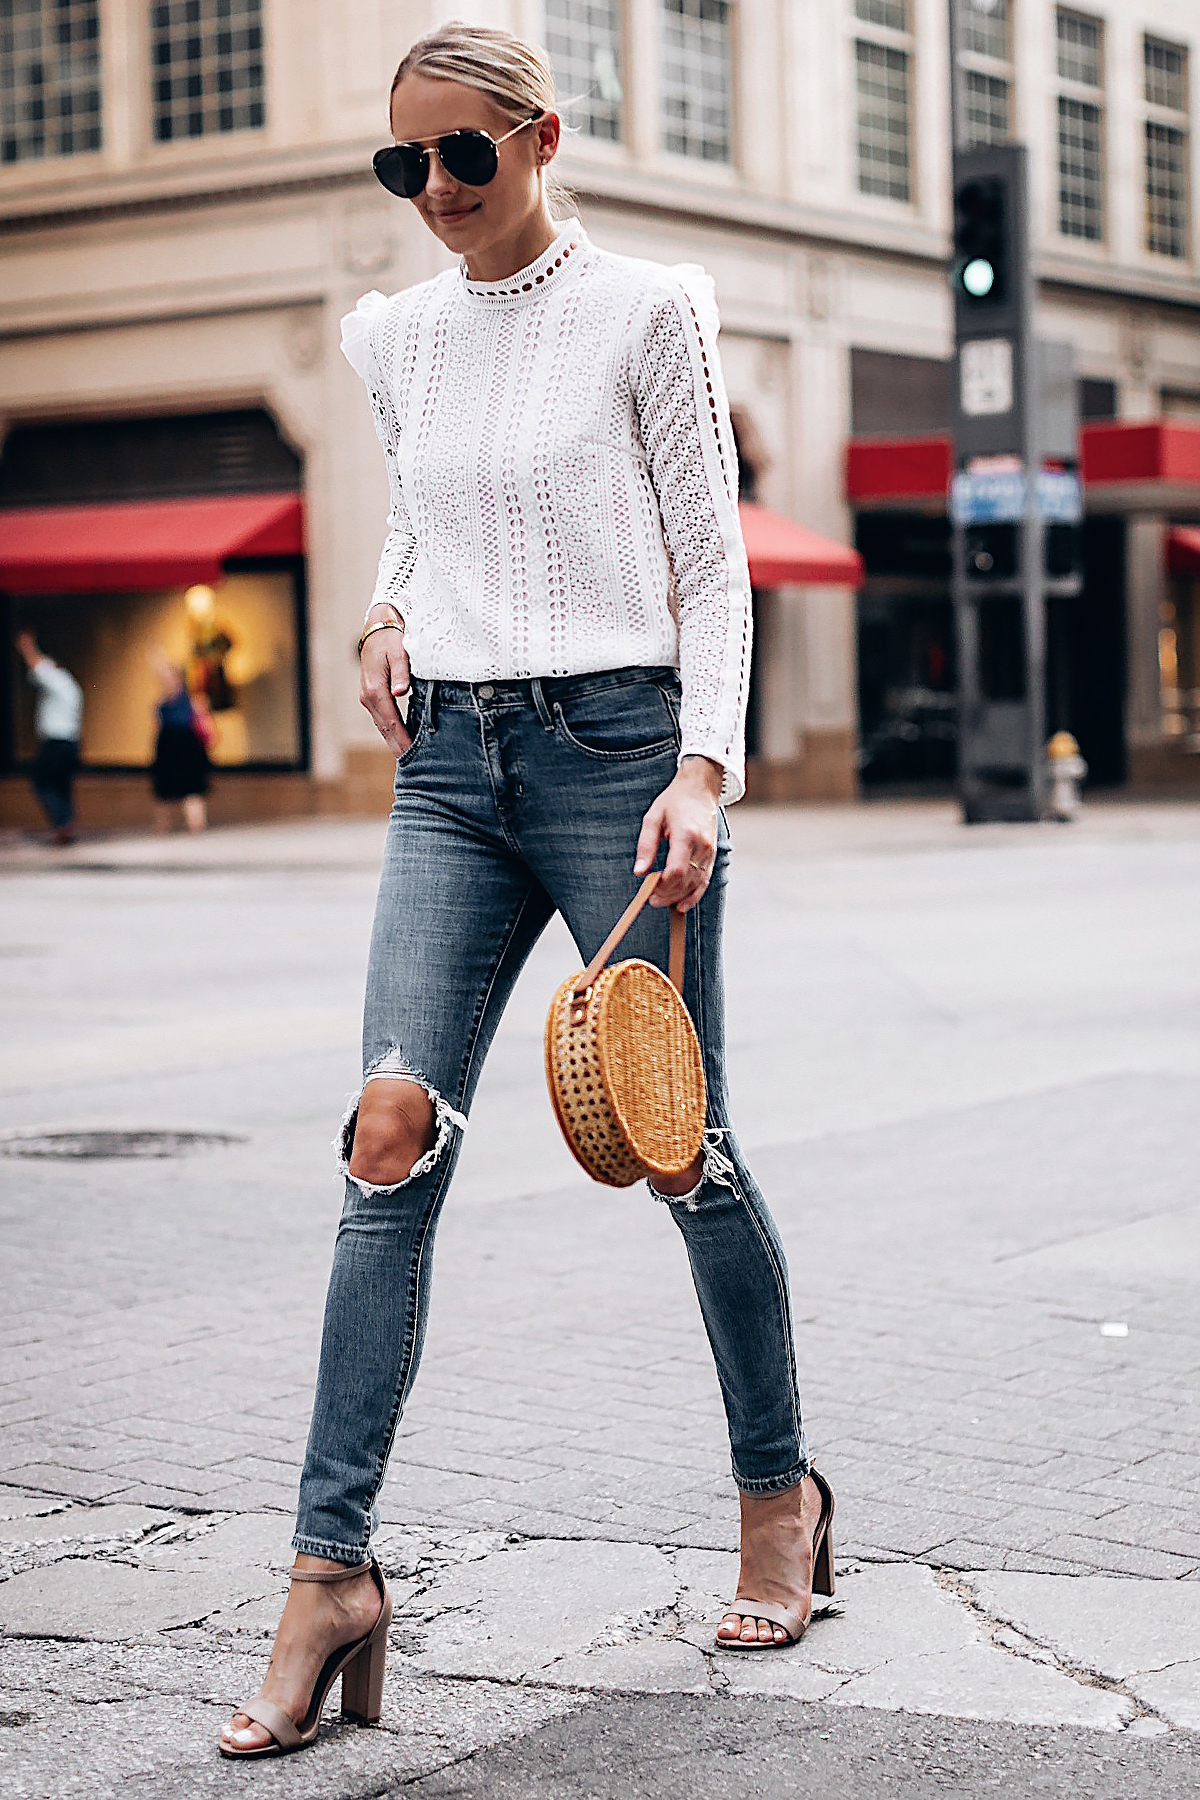 Blonde Woman Wearing Fashion Jackson Bloomingdales AQUA White Lace Ruffle Top Levis 721 Ripped Skinny Jeans Tan Ankle Strap Heeled Sandals Serpui Straw Circle Handbag Aviator Sunglasses Fashion Jackson San Diego Fashion Blogger Street Style